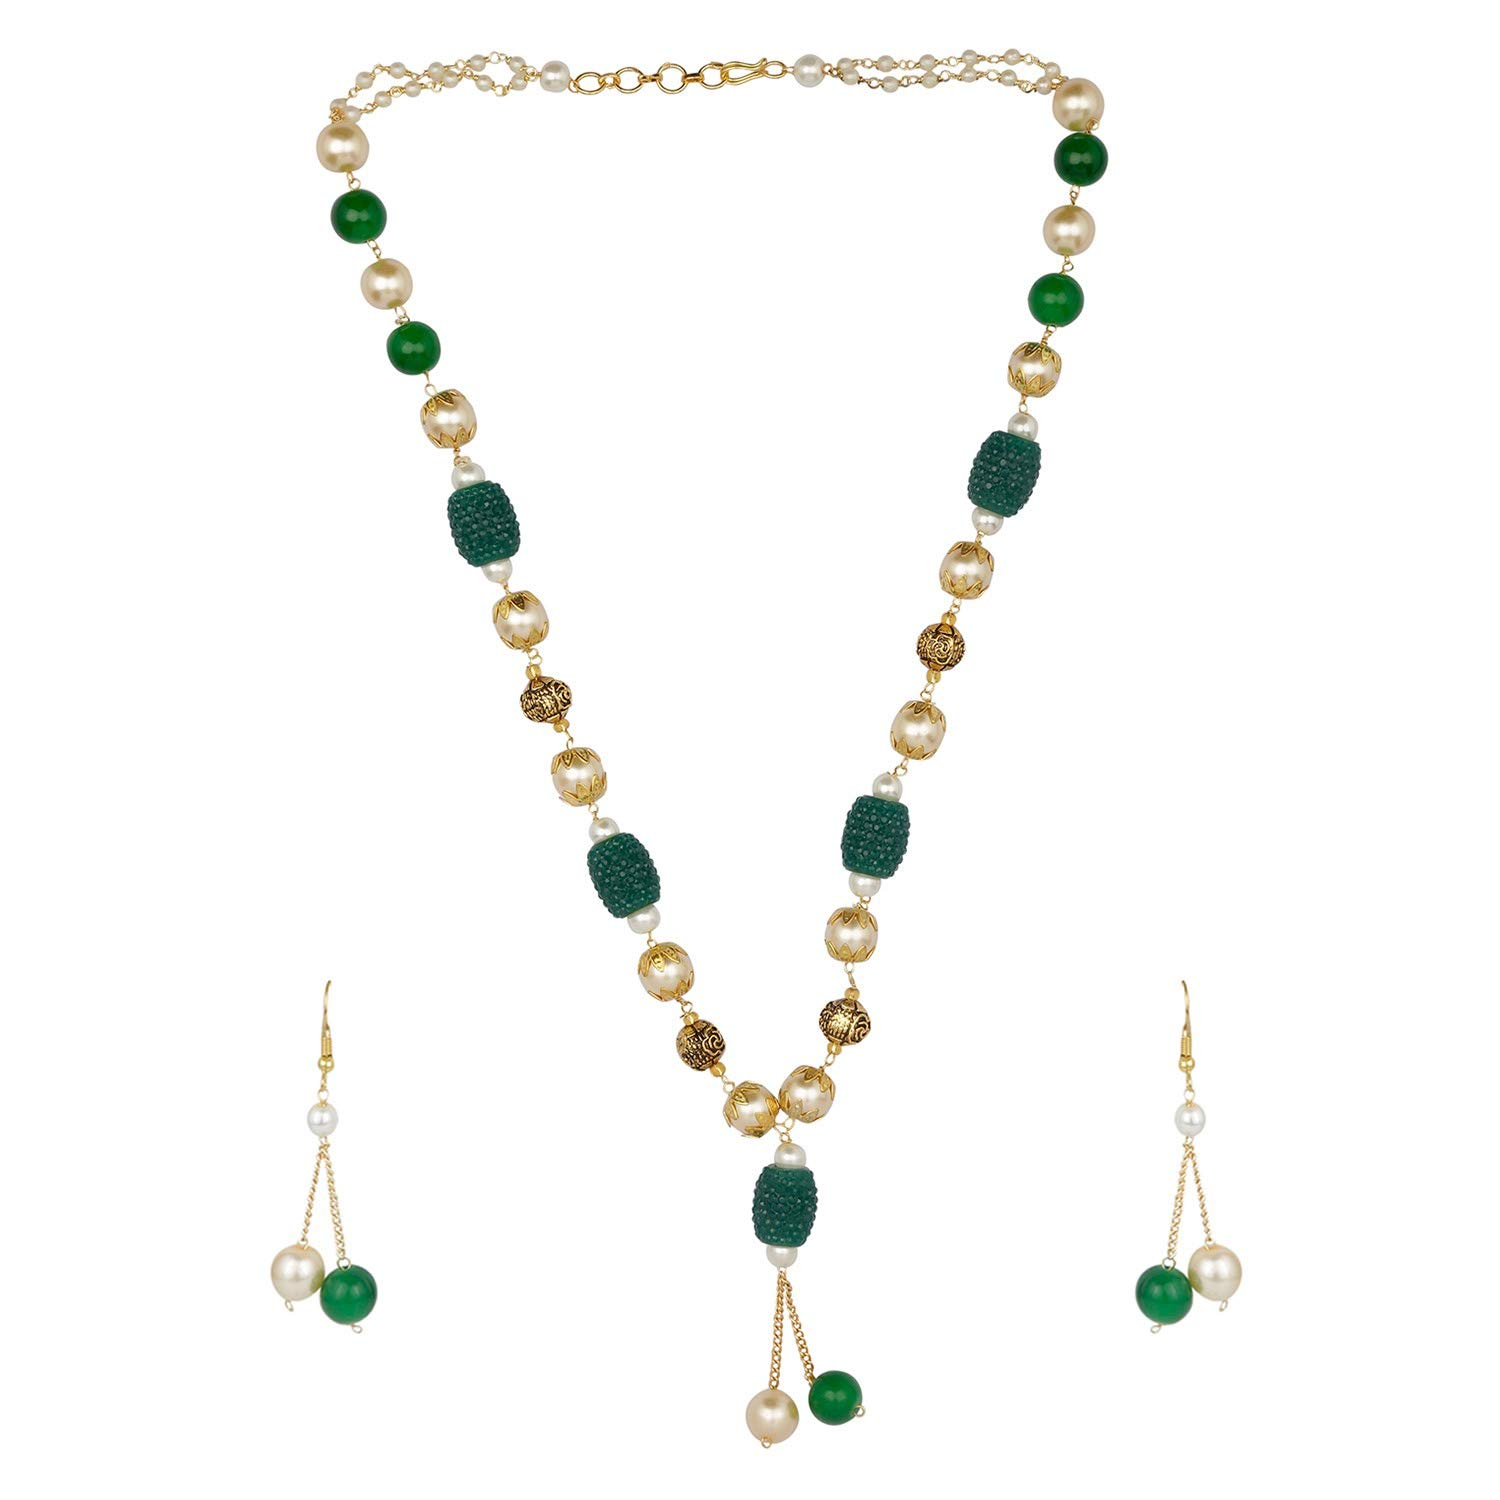 Efulgenz Indian Bollywood Boho Antique Vintage Tribal Beaded Green Pearl Strand Statement Neckalce Earrings Jewelry Set